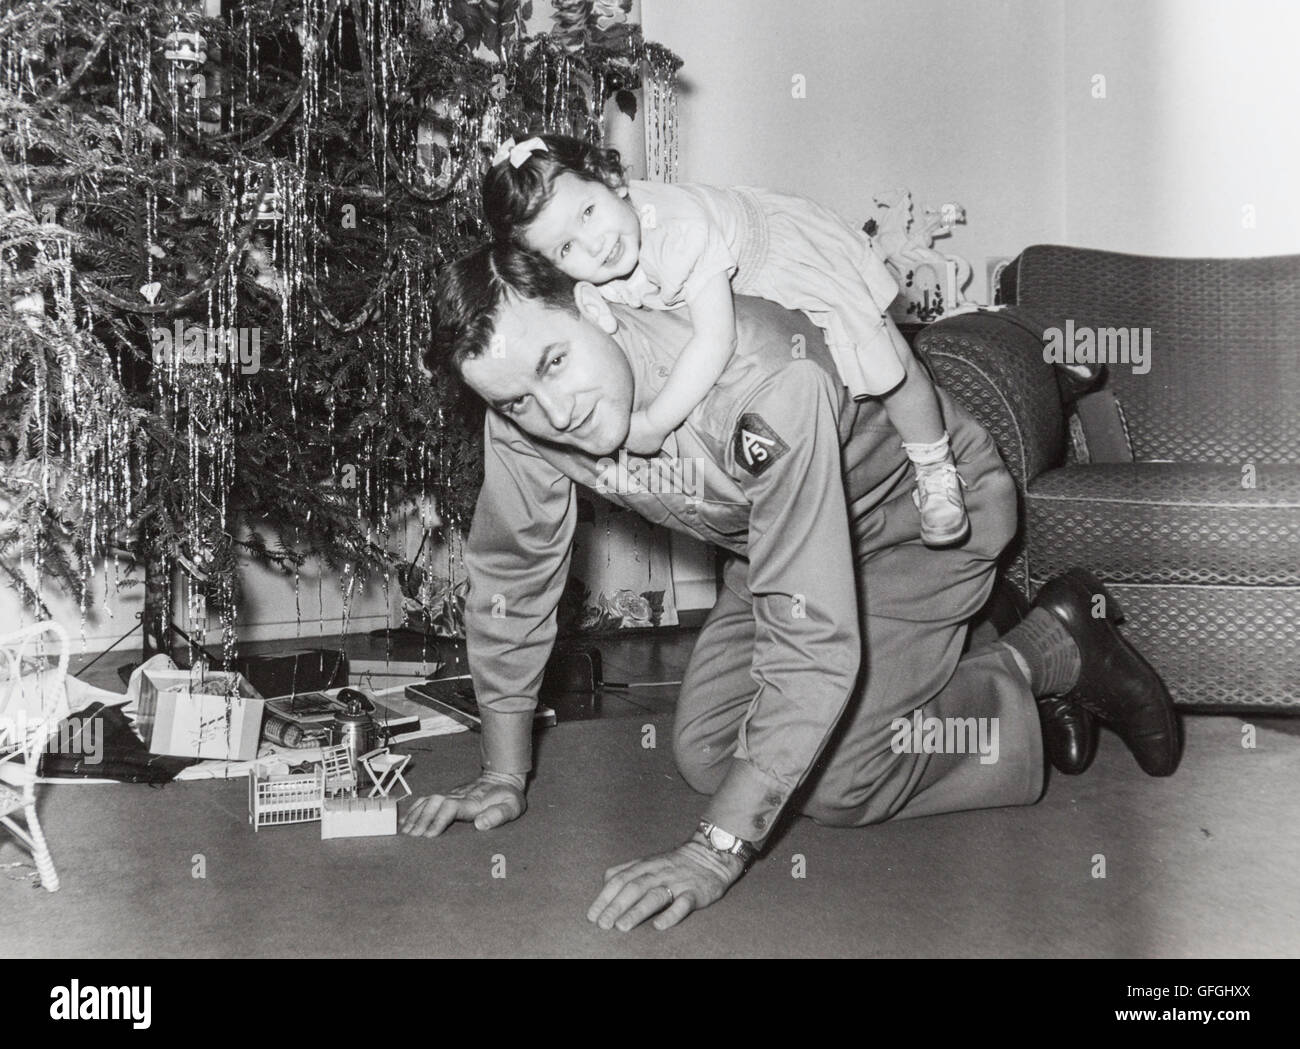 Vintage 1950's Christmas Photograph, Military Officer Small Daughter in Front of Christmas Tree Stock Photo